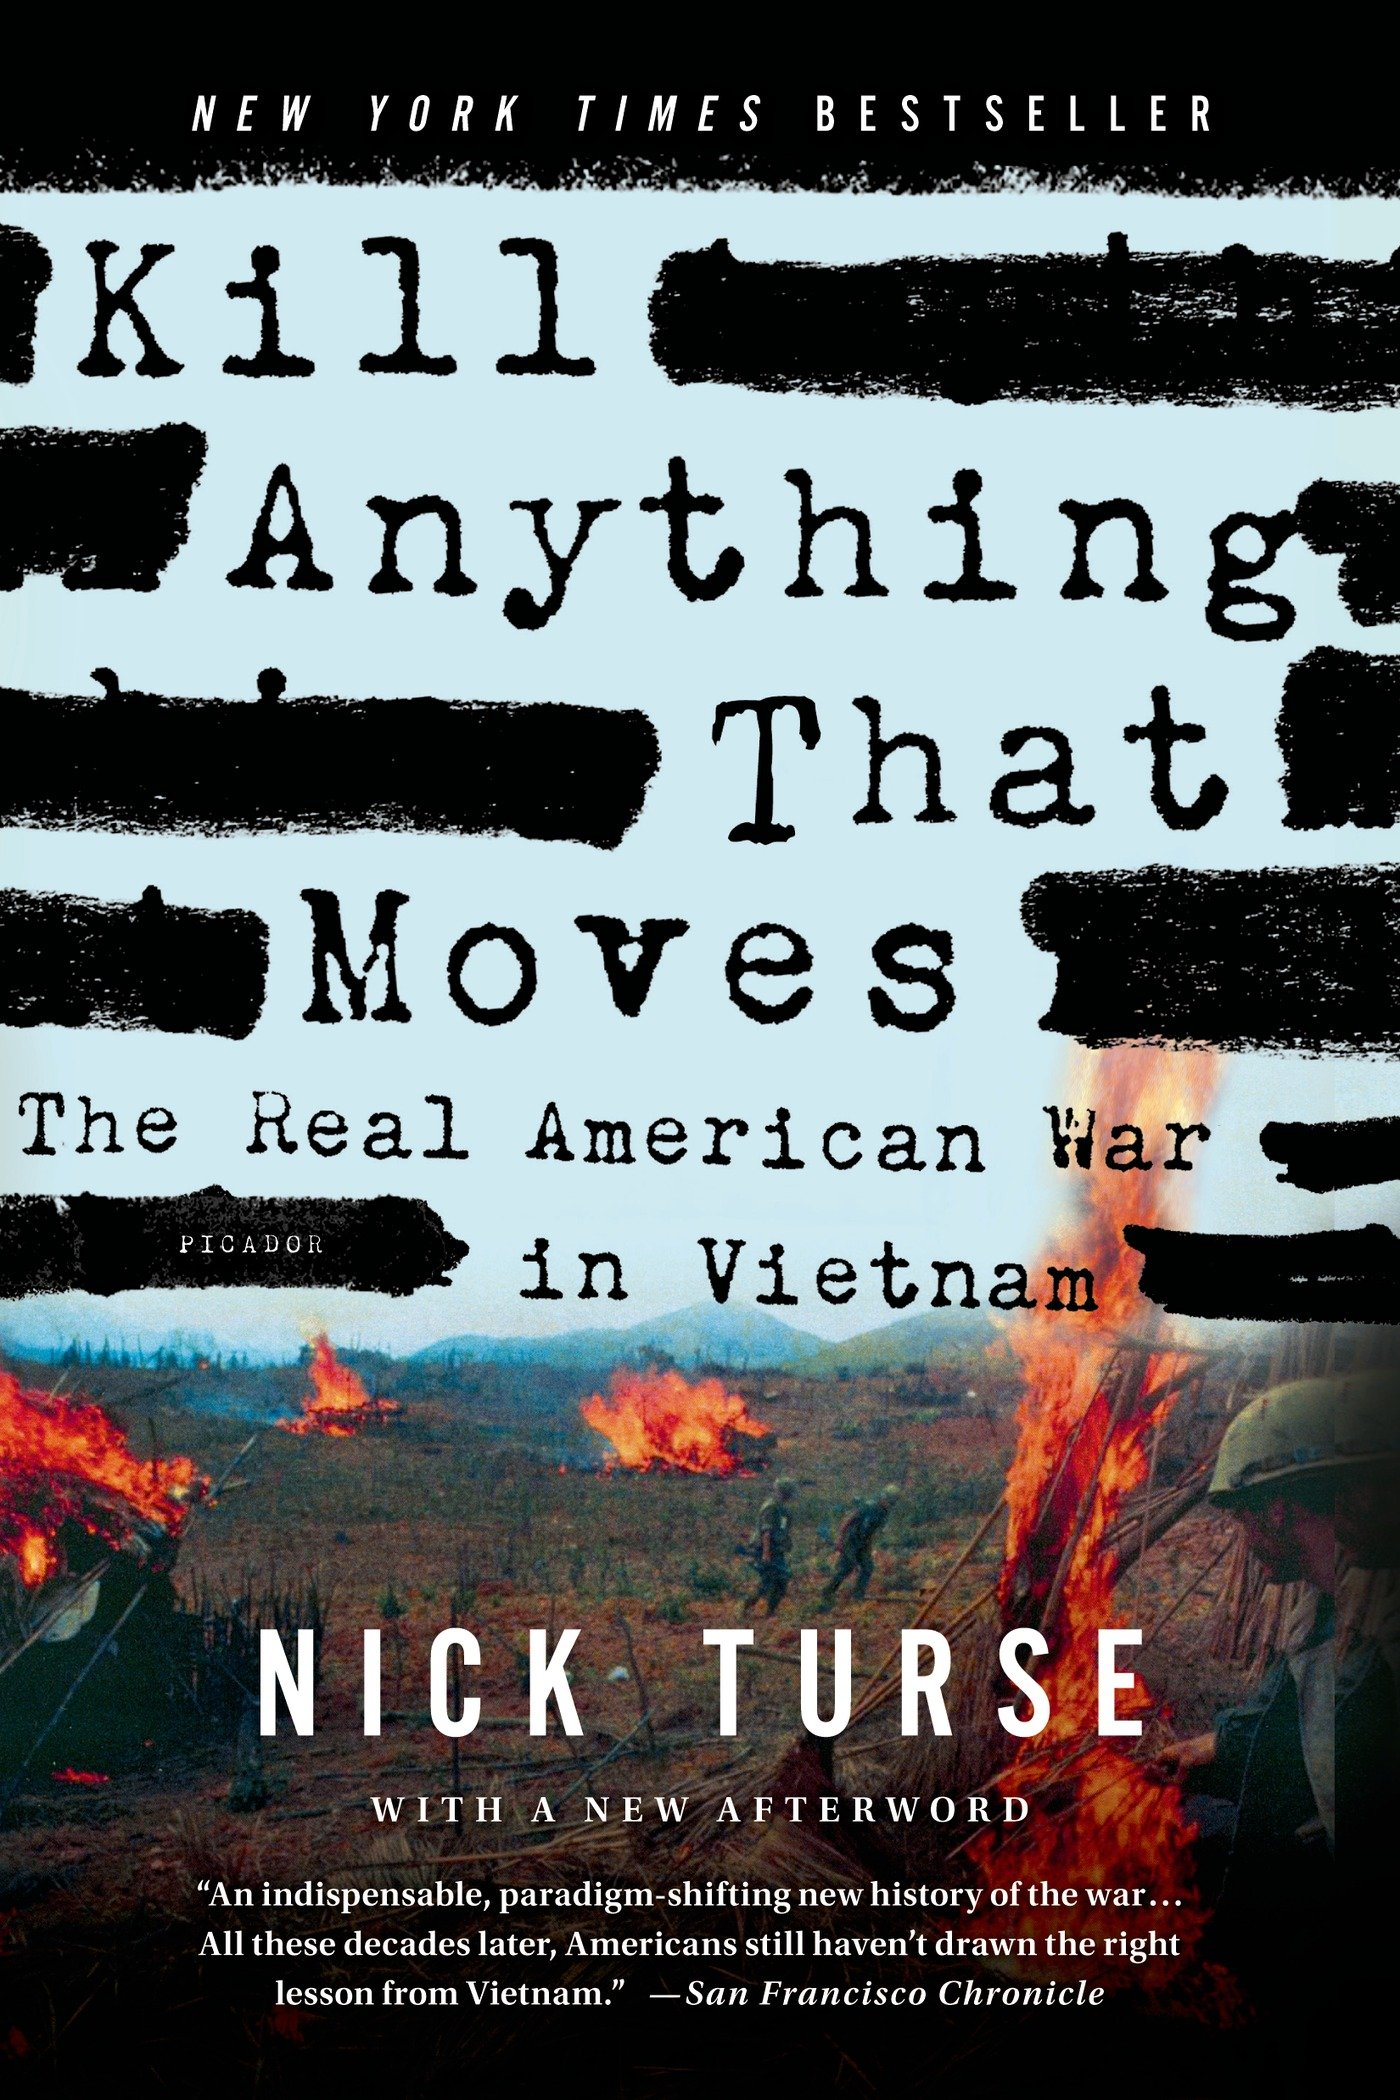 A Look at Kill Anything that Moves: The Real American War in Vietnam  by Nick Turse